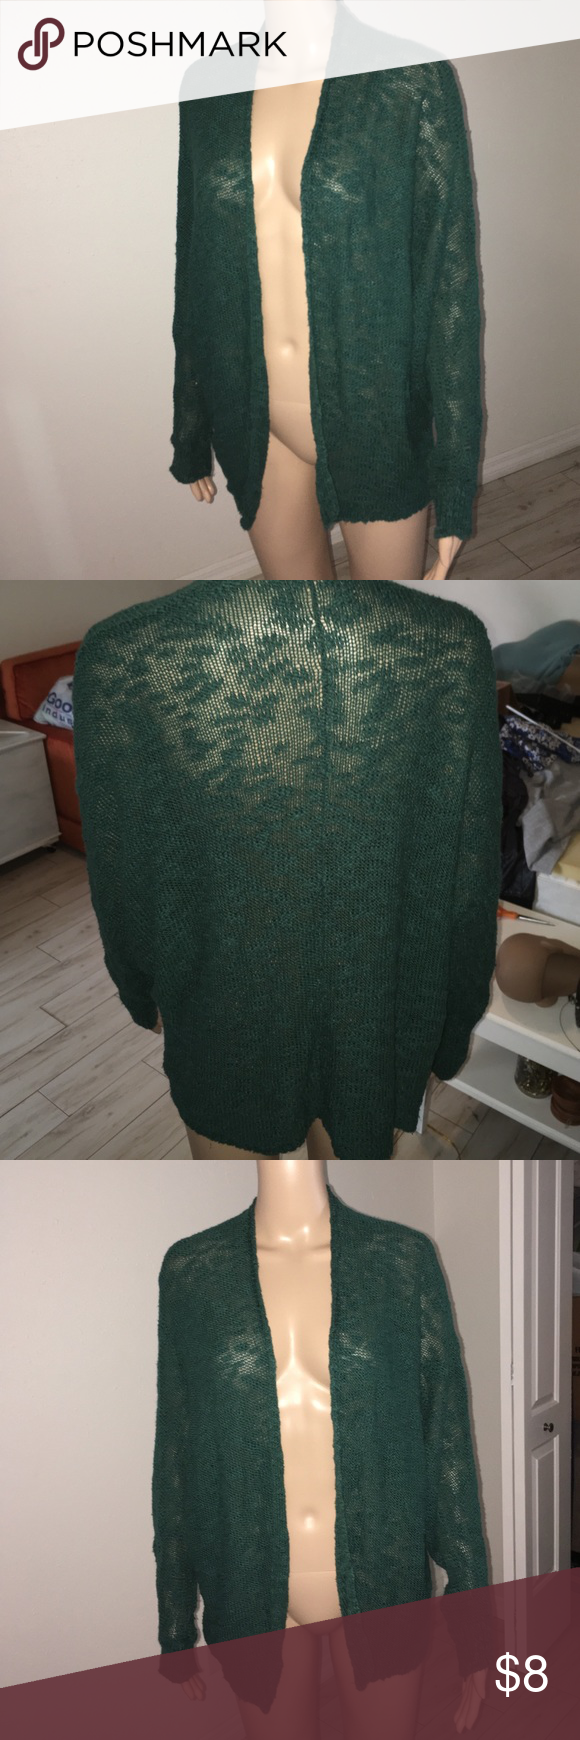 Cardigan Dark turquoise open front semi sheer cardigan with crocheted pattern Sparkle & Fade Sweaters Cardigans